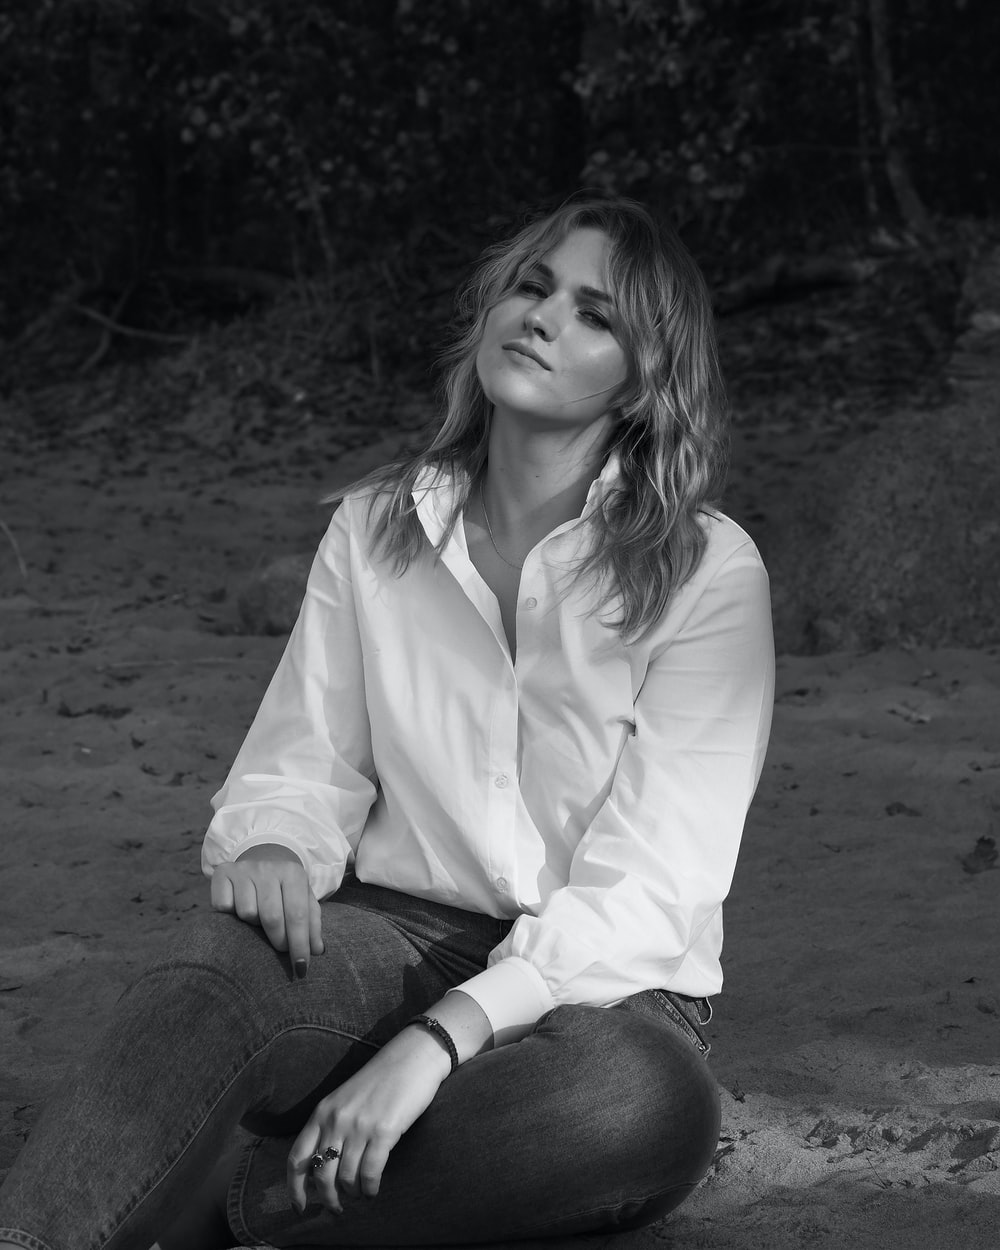 woman in white dress shirt and black denim jeans sitting on ground